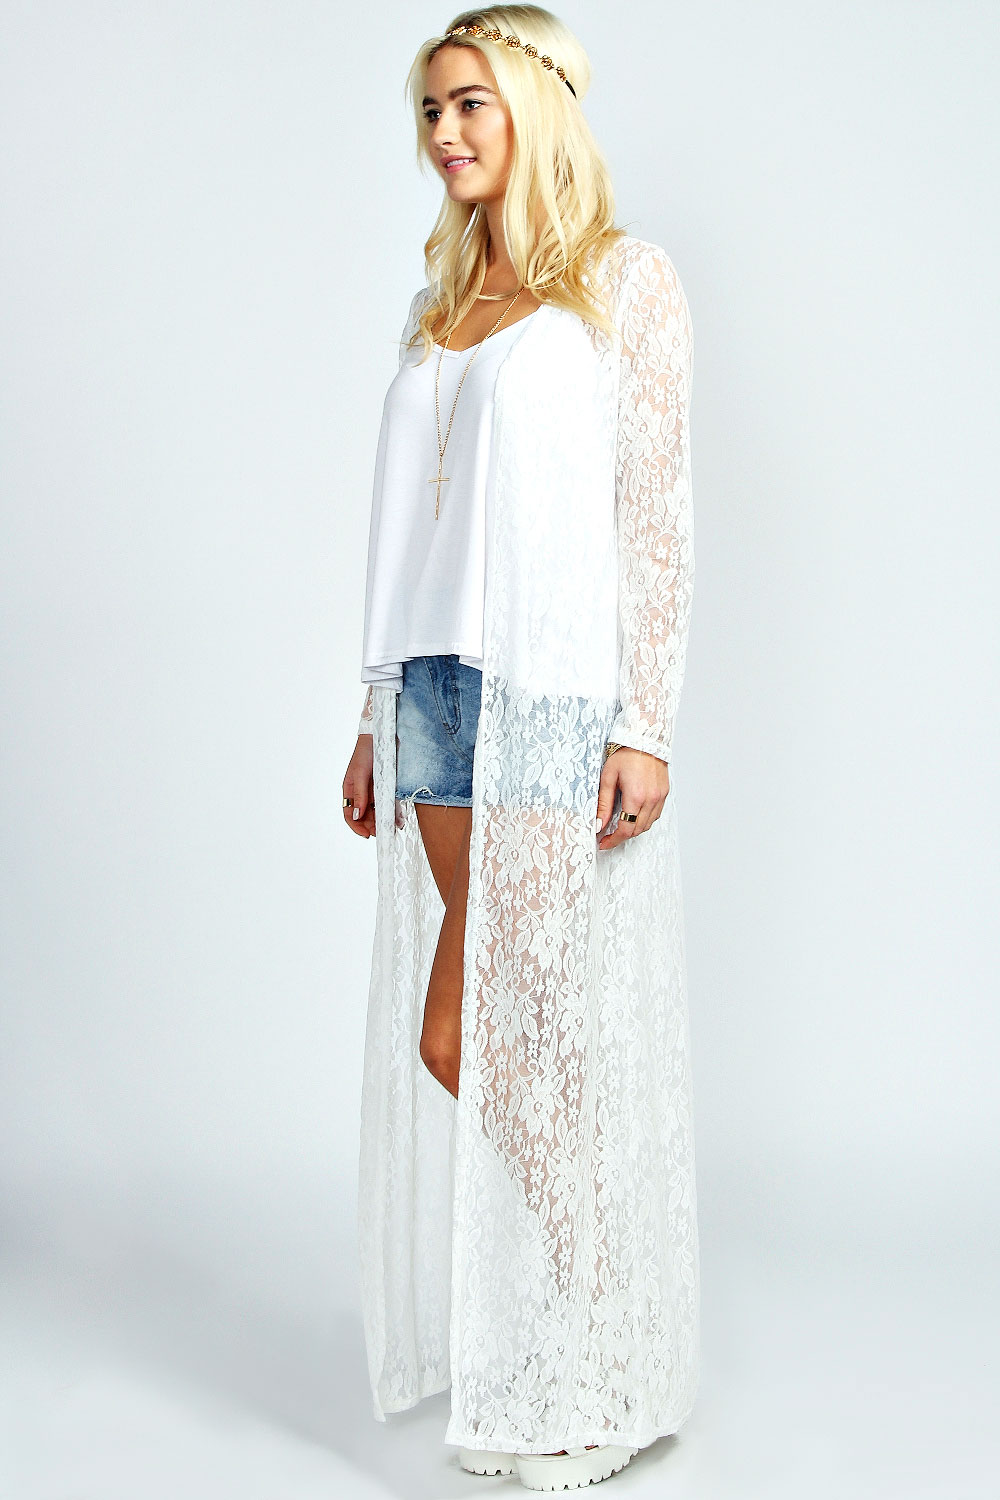 cream lace long kimono to wear over a sun dress